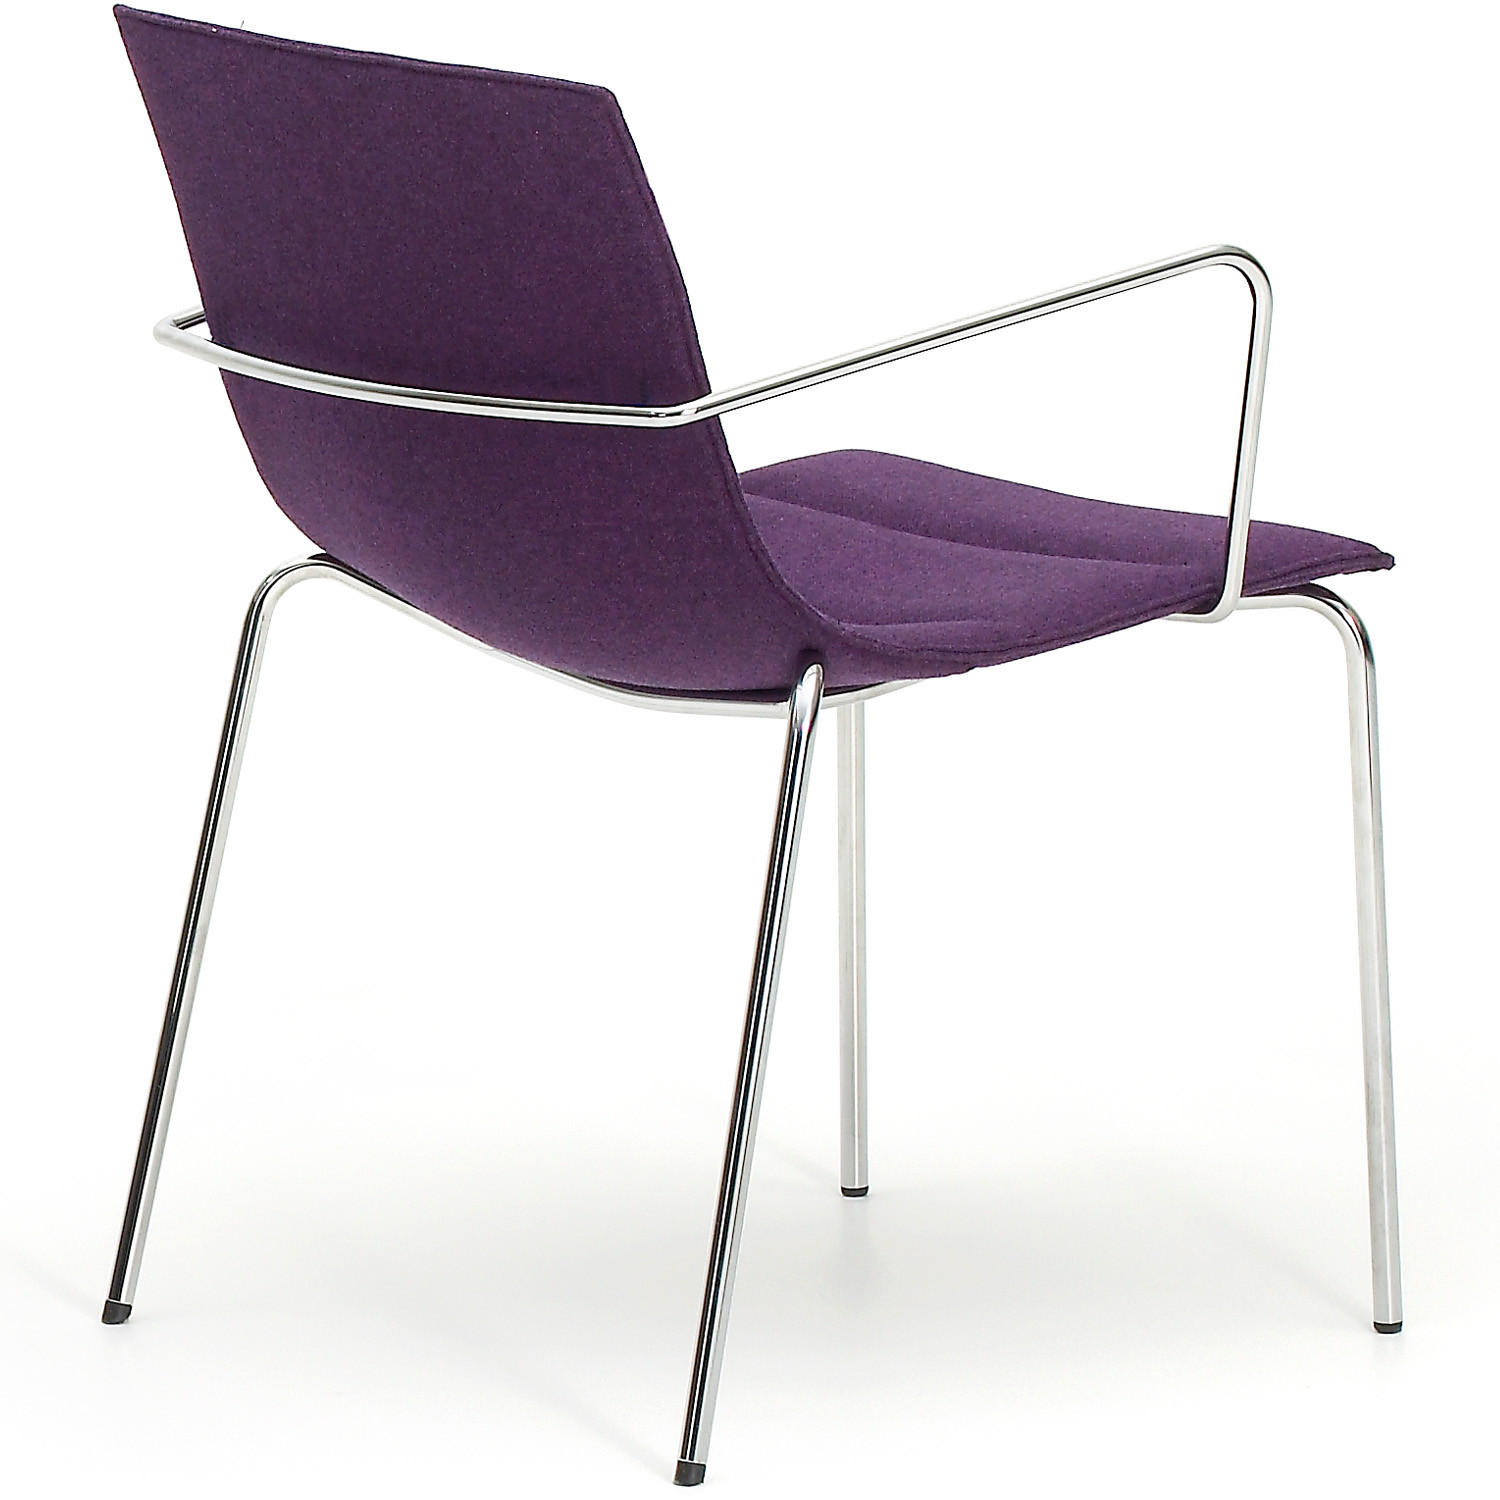 Bond Xtra Light Chair by Offecct